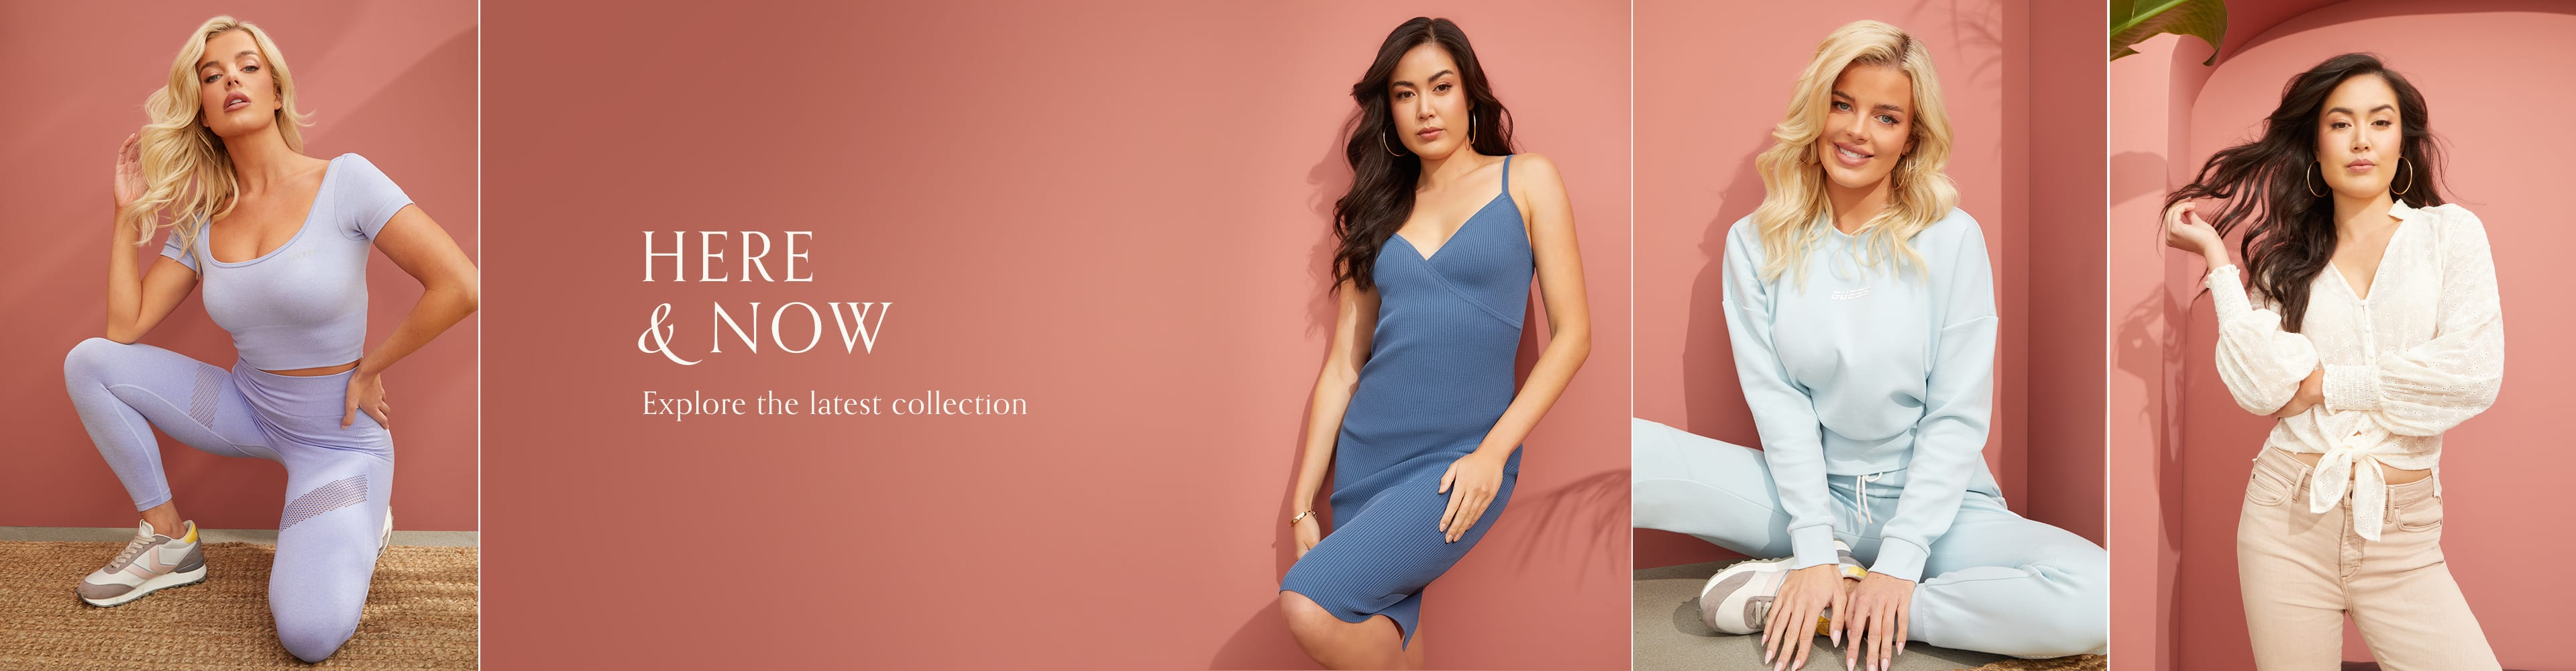 New styles for women